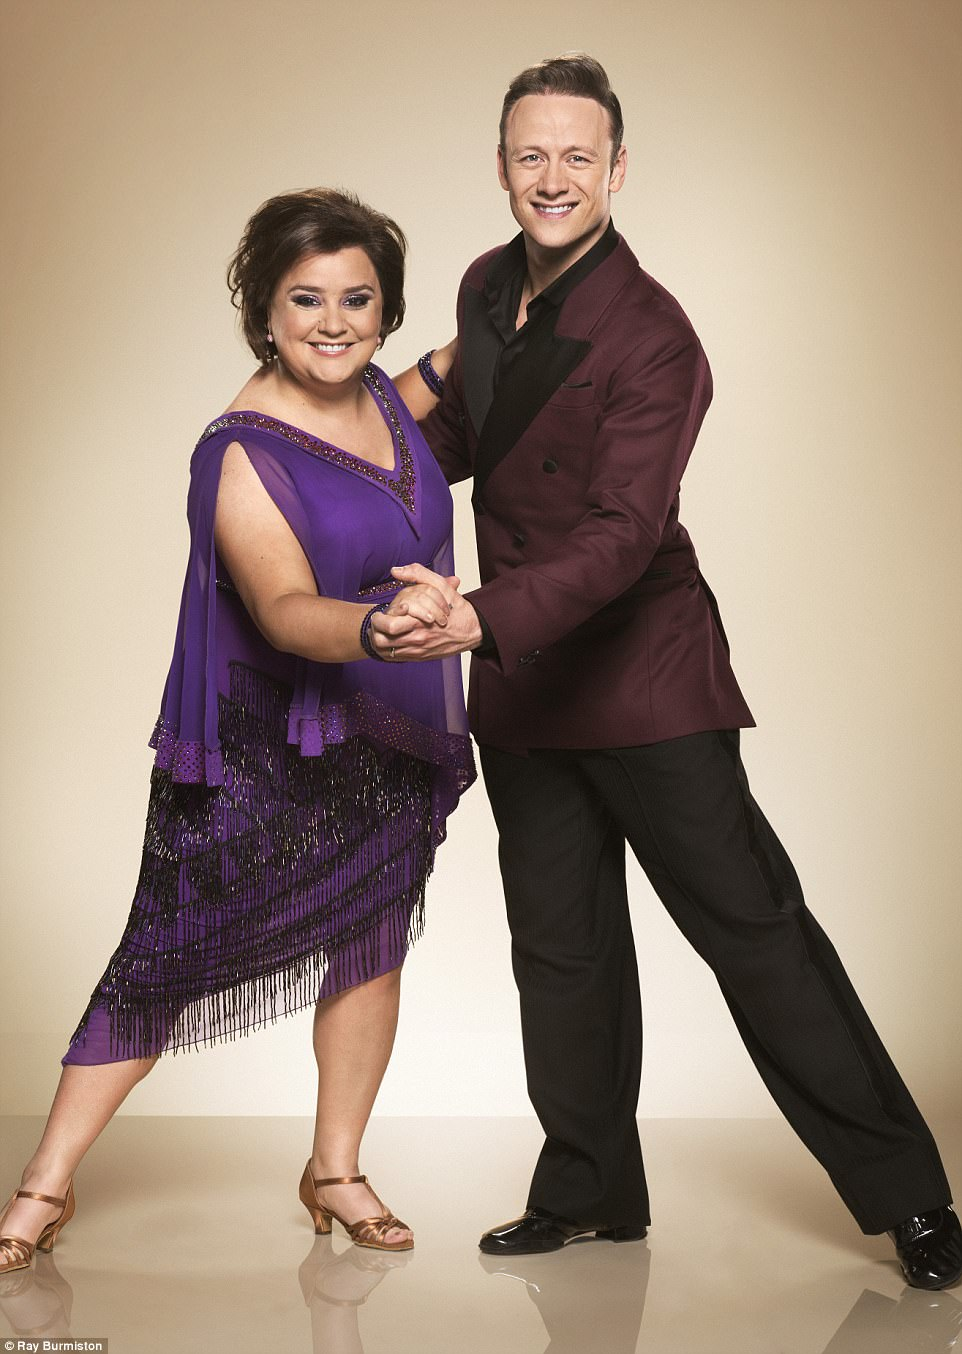 Stunning: Comedian Susan Calman looked worlds away from her usual suited and booted self as she posed gleefully beside her partner Kevin Clifton, in a stunning purple frock with soft chiffon sleeves